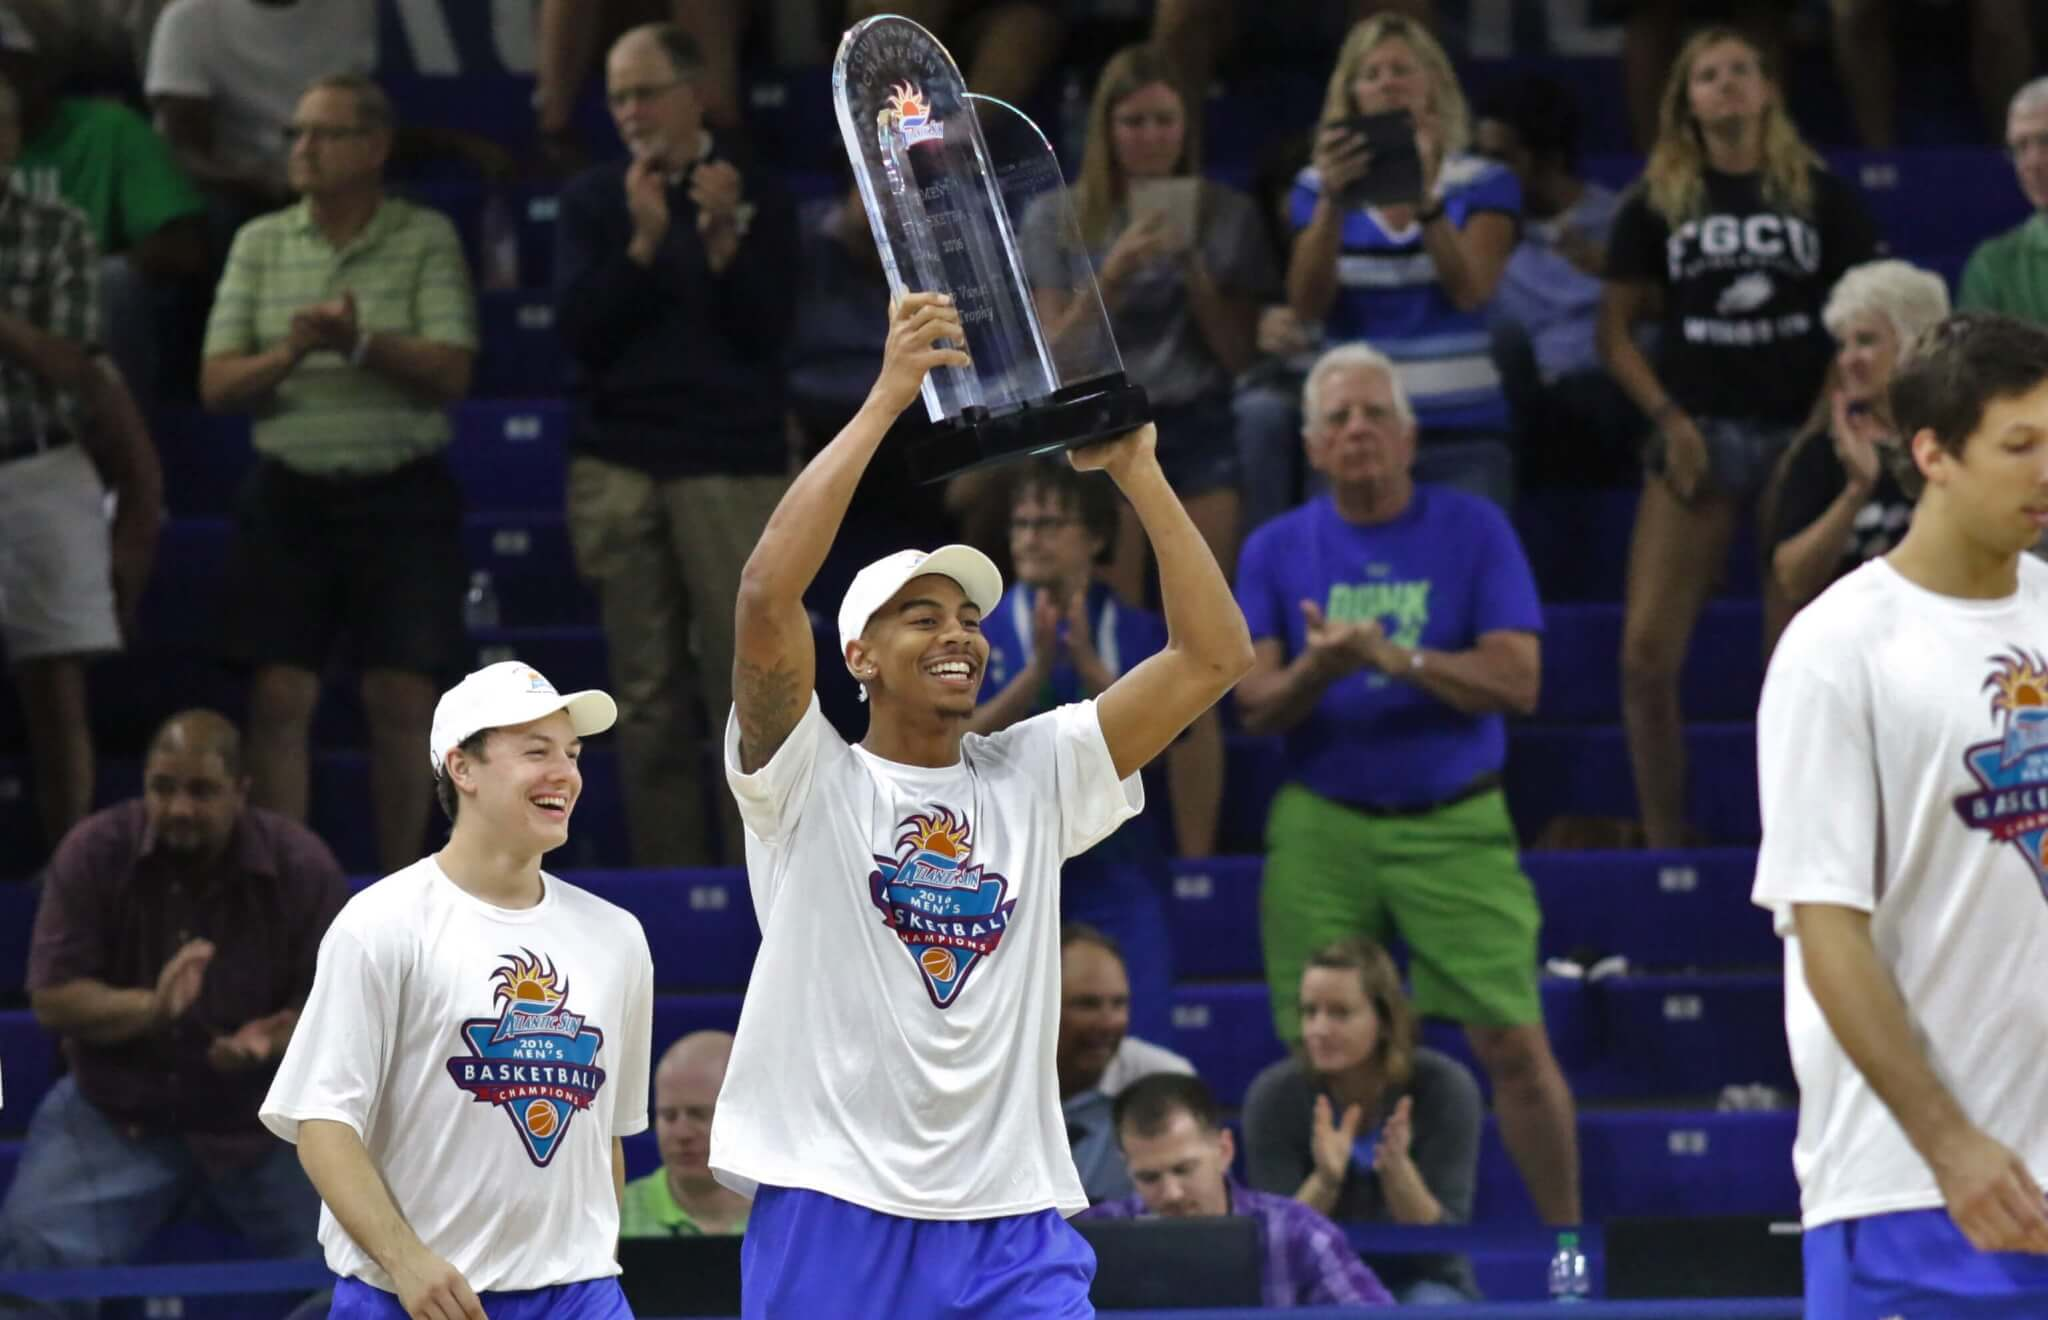 FGCU to host NCAA Selection Show watch party at Alico